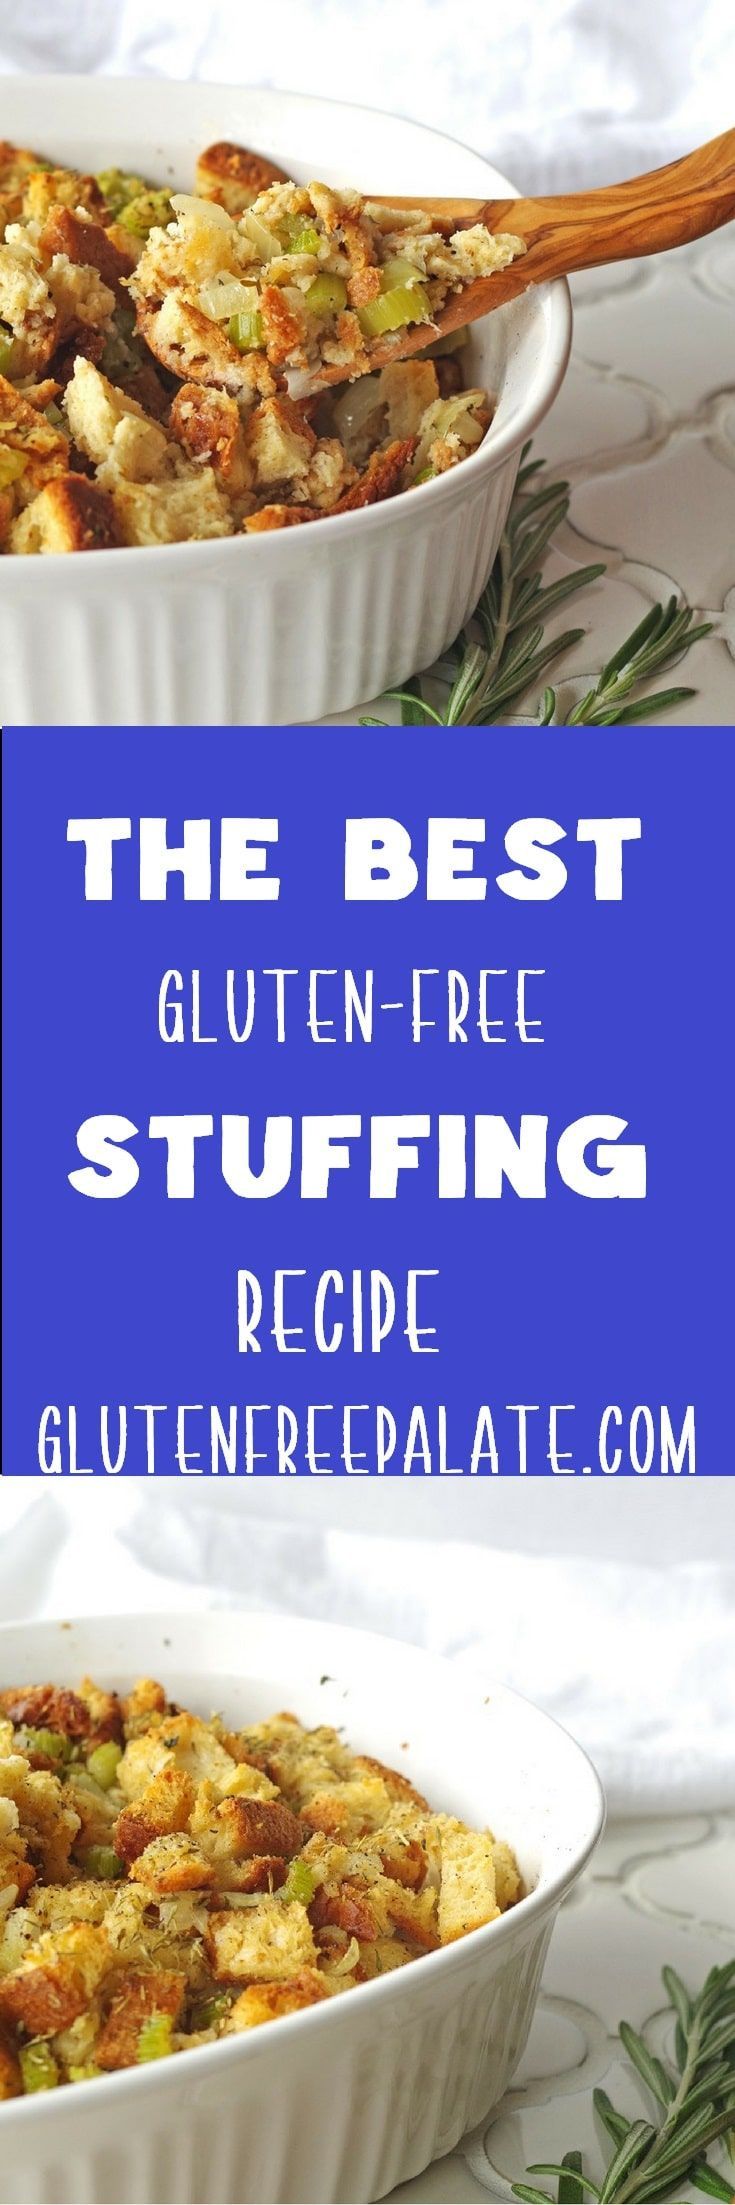 Gluten-Free stuffing (dairy-free option) that is bursting with flavor, simple to make, uses only ten ingredients, and is perfect for baking or stuffing a Turkey. via @gfpalate